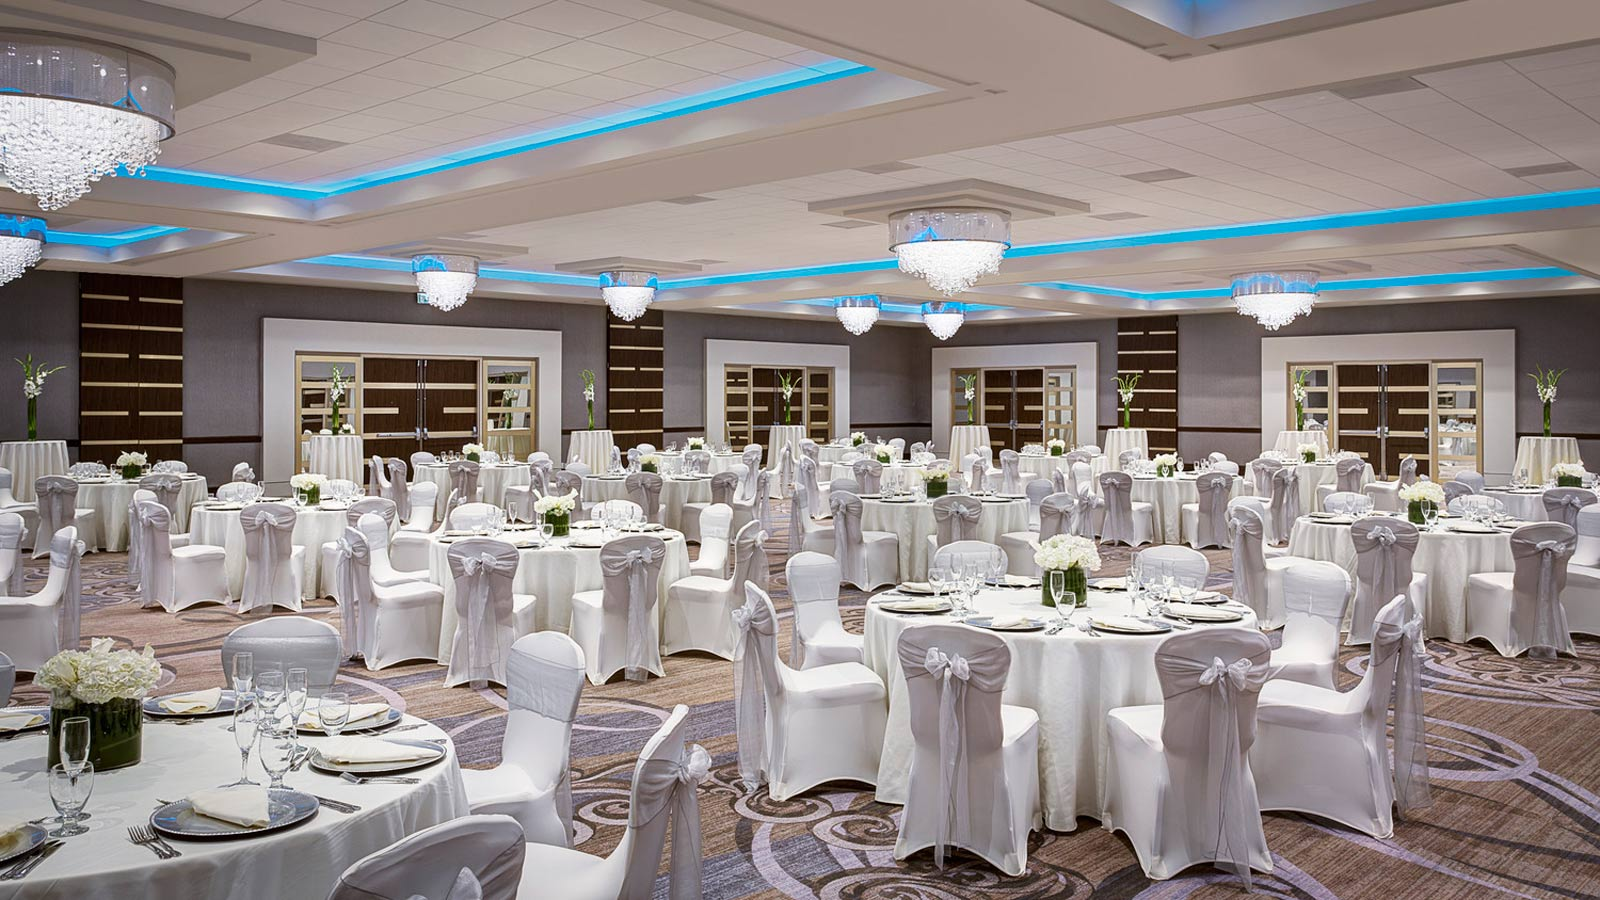 Small Wedding Reception Venues Houston : Wedding venues in houston sheraton brookhollow hotel